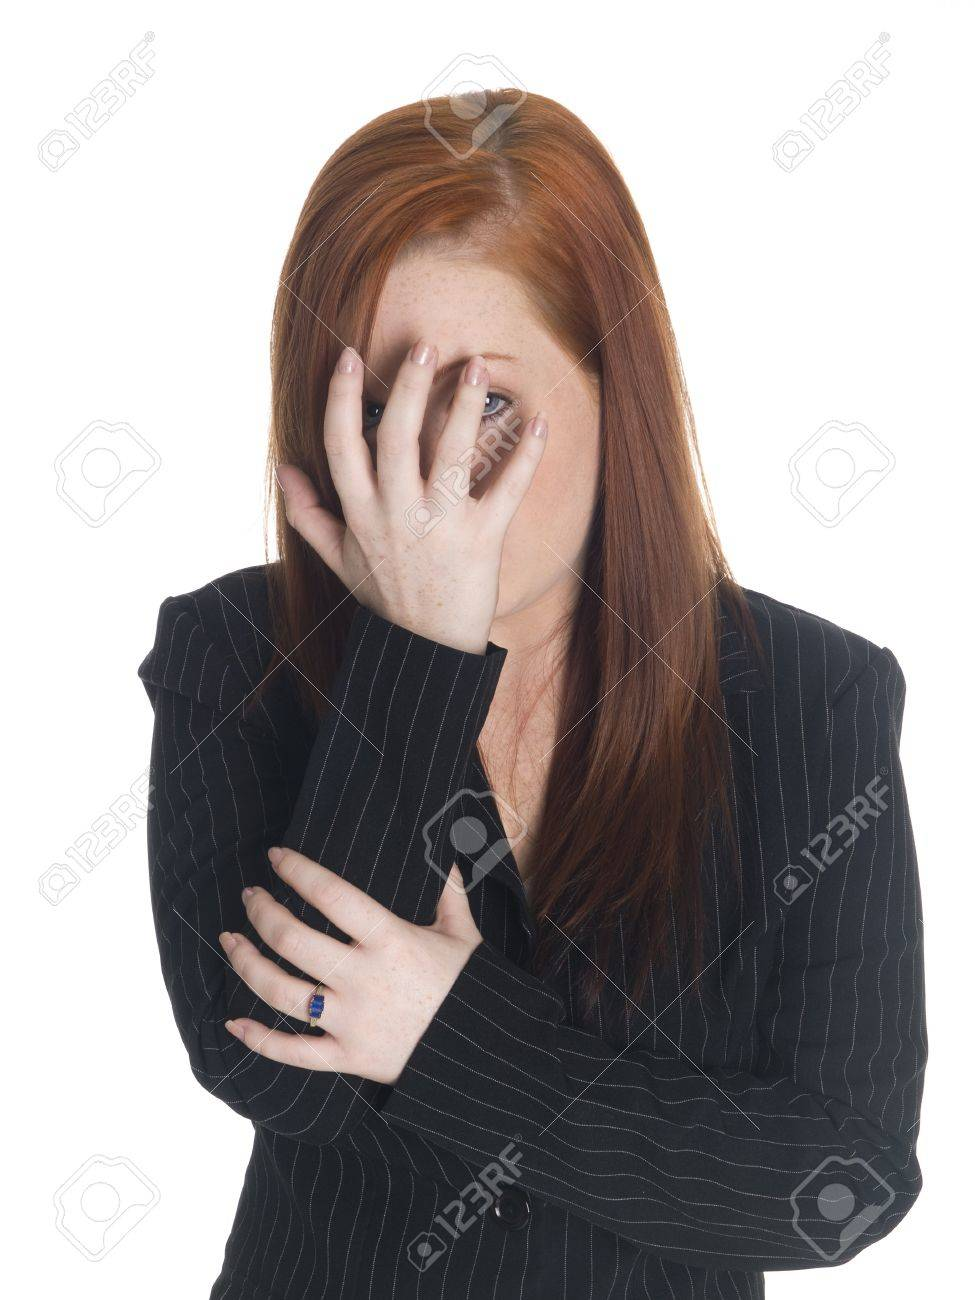 Isolated studio shot of a businesswoman who is peeking even though she just can't look. Stock Photo - 8052676